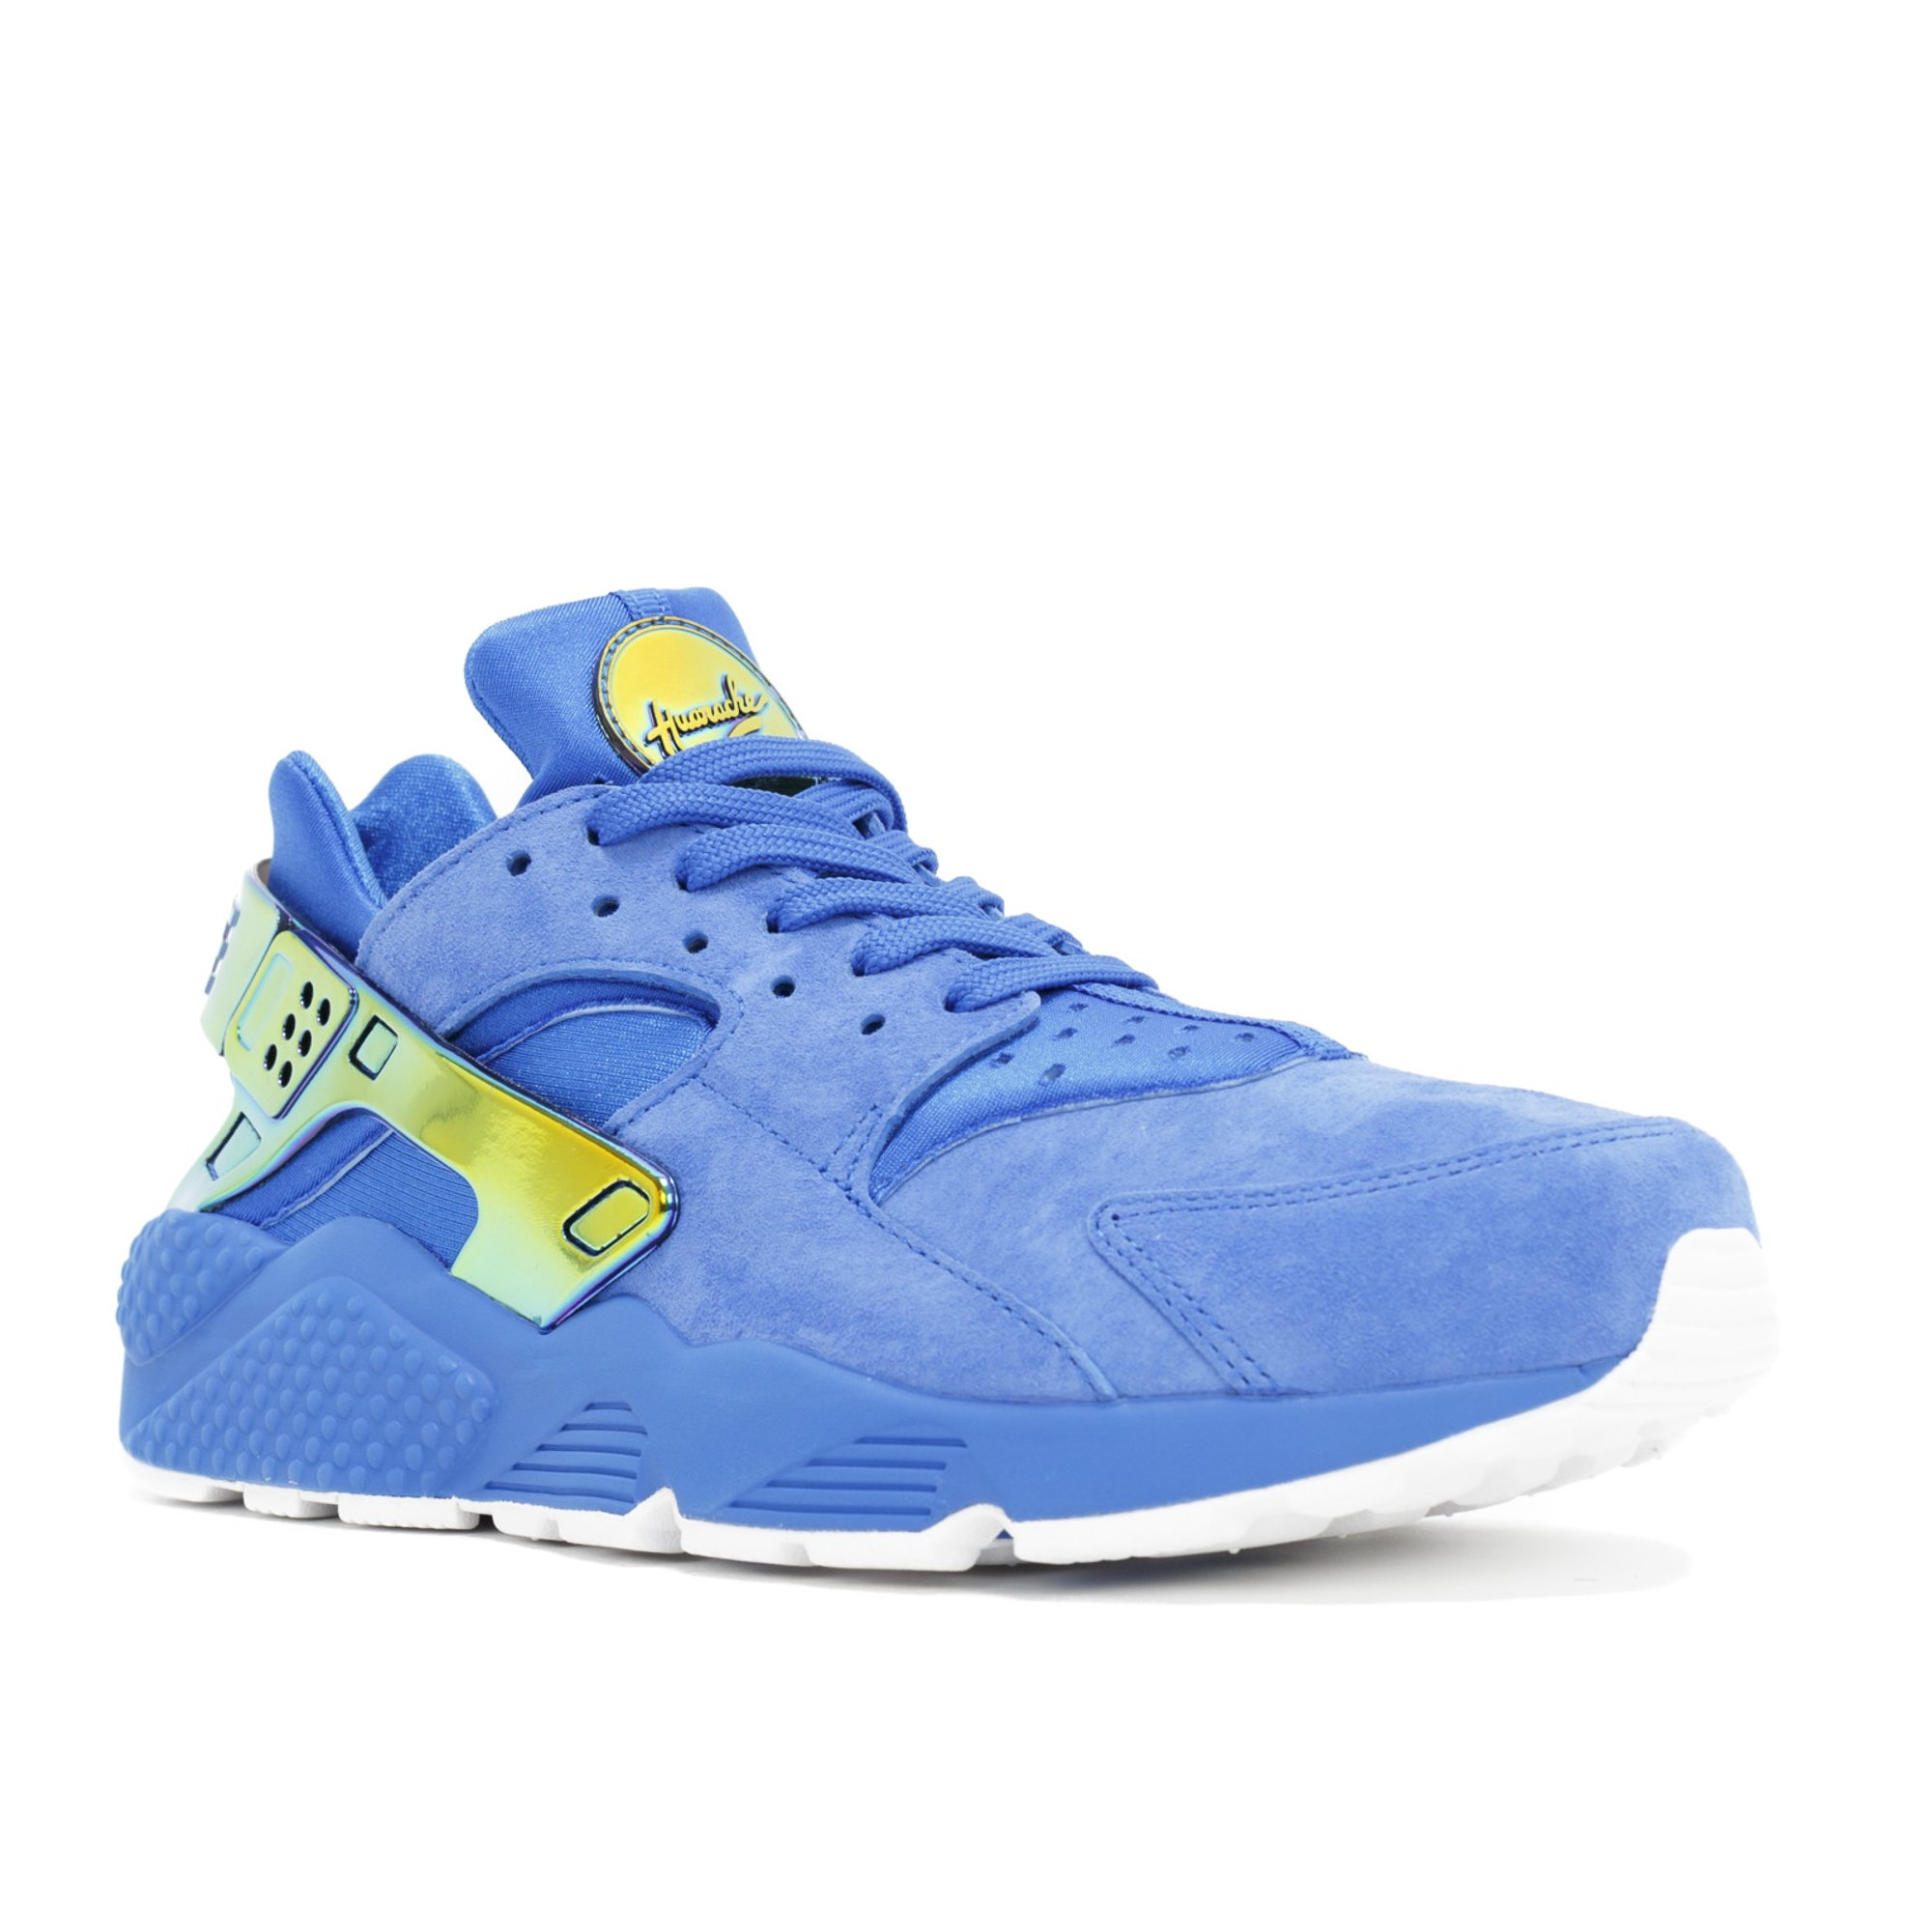 differently eb197 1c68a Nike - Men - Nike Air Huarache Run Prm Qs  Undefeated  - 853940-114 - Size  10.5   Walmart Canada